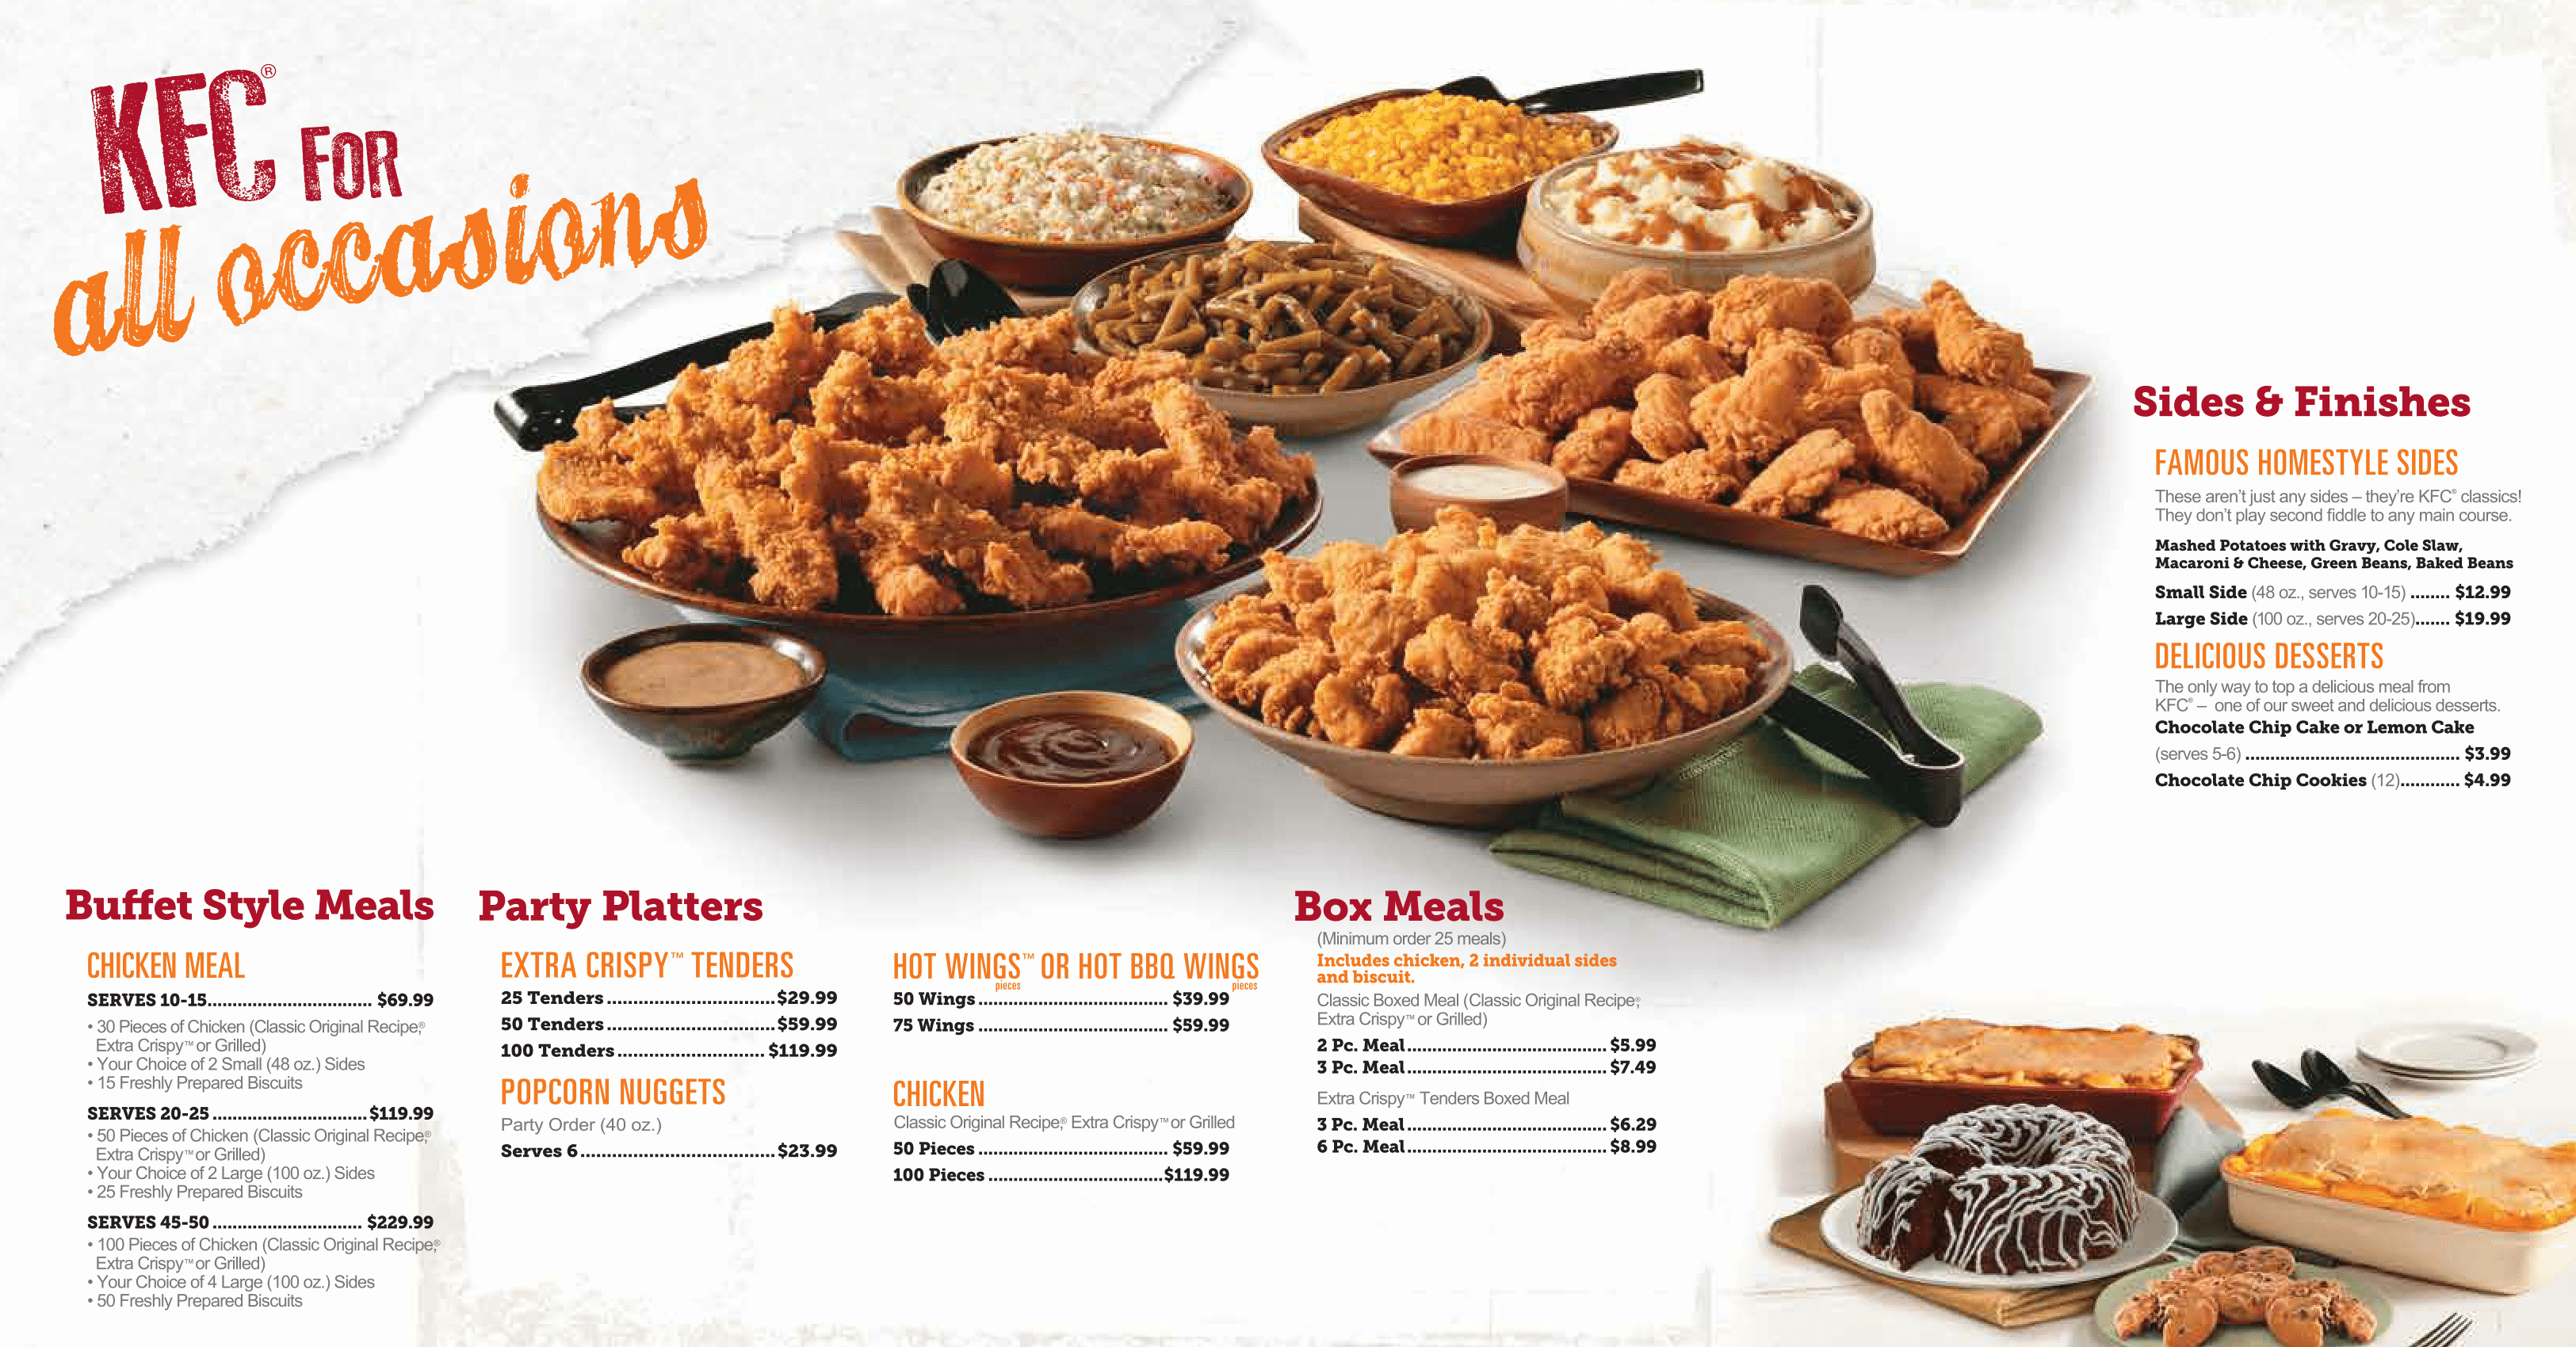 KFC CATERING MENU PRICES | View KFC Catering Menu Here - photo#6